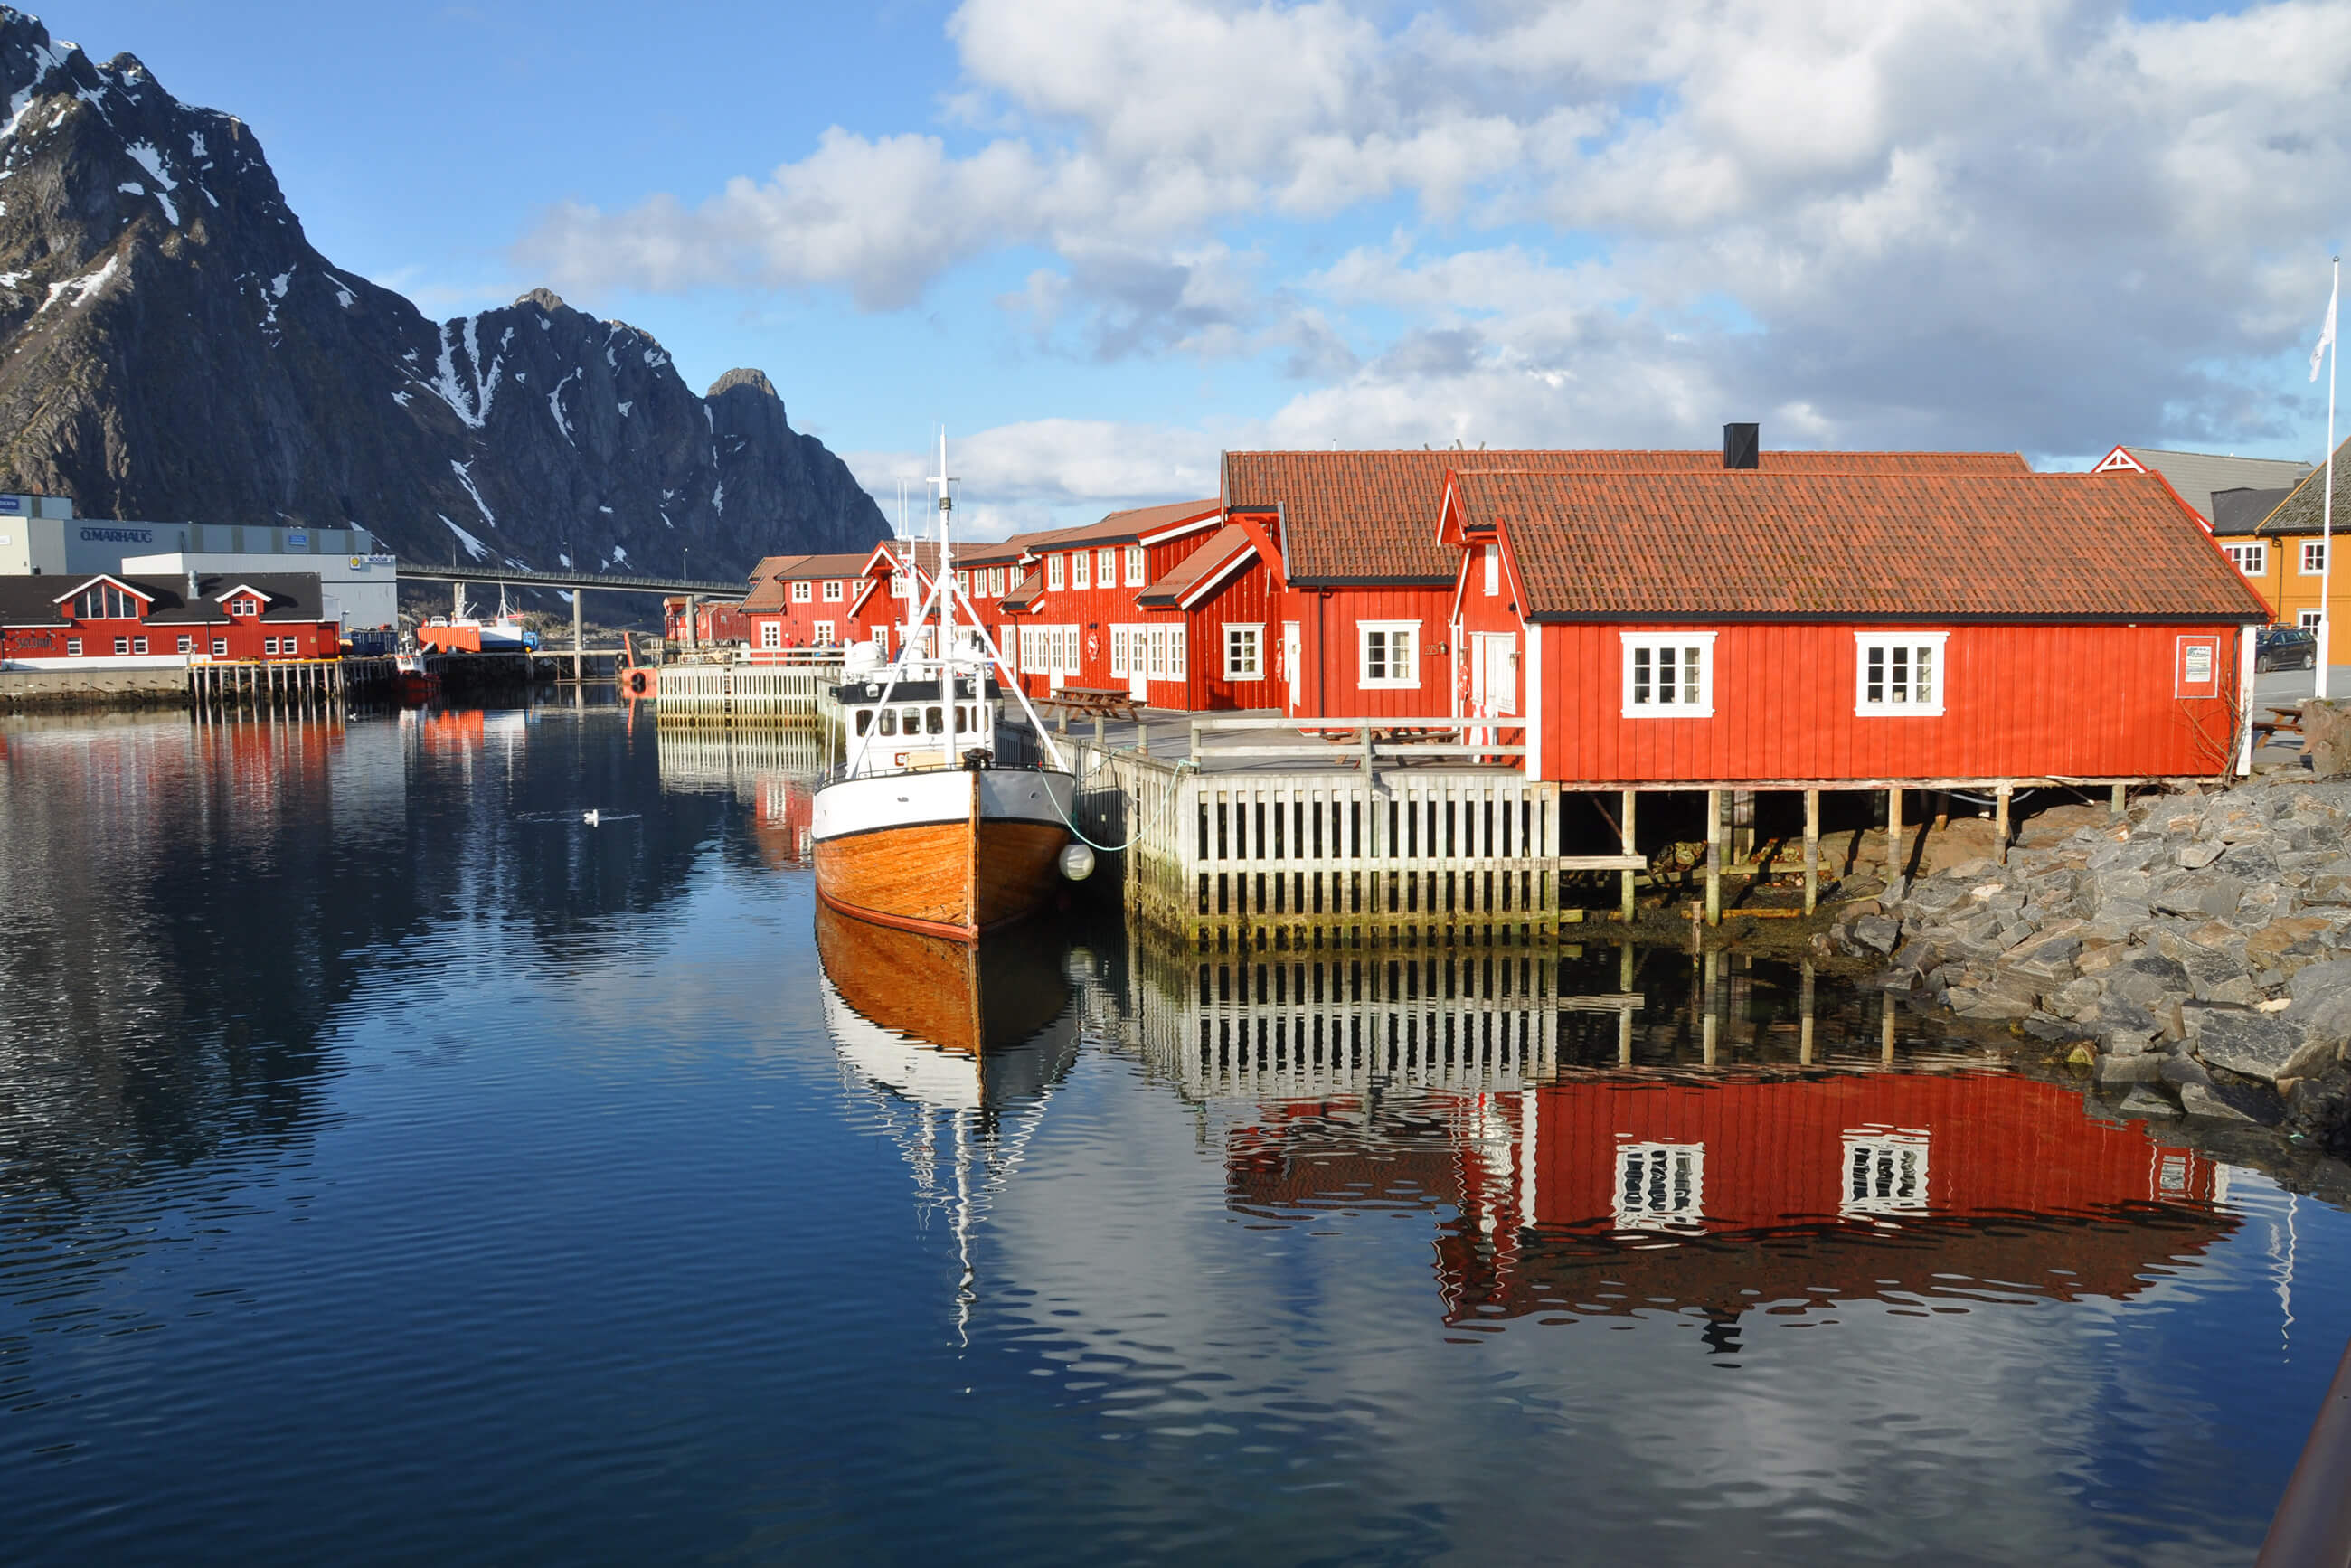 https://bubo.sk/uploads/galleries/5043/svolvar-norway-hgr-109838--photo_photo_competition.jpg